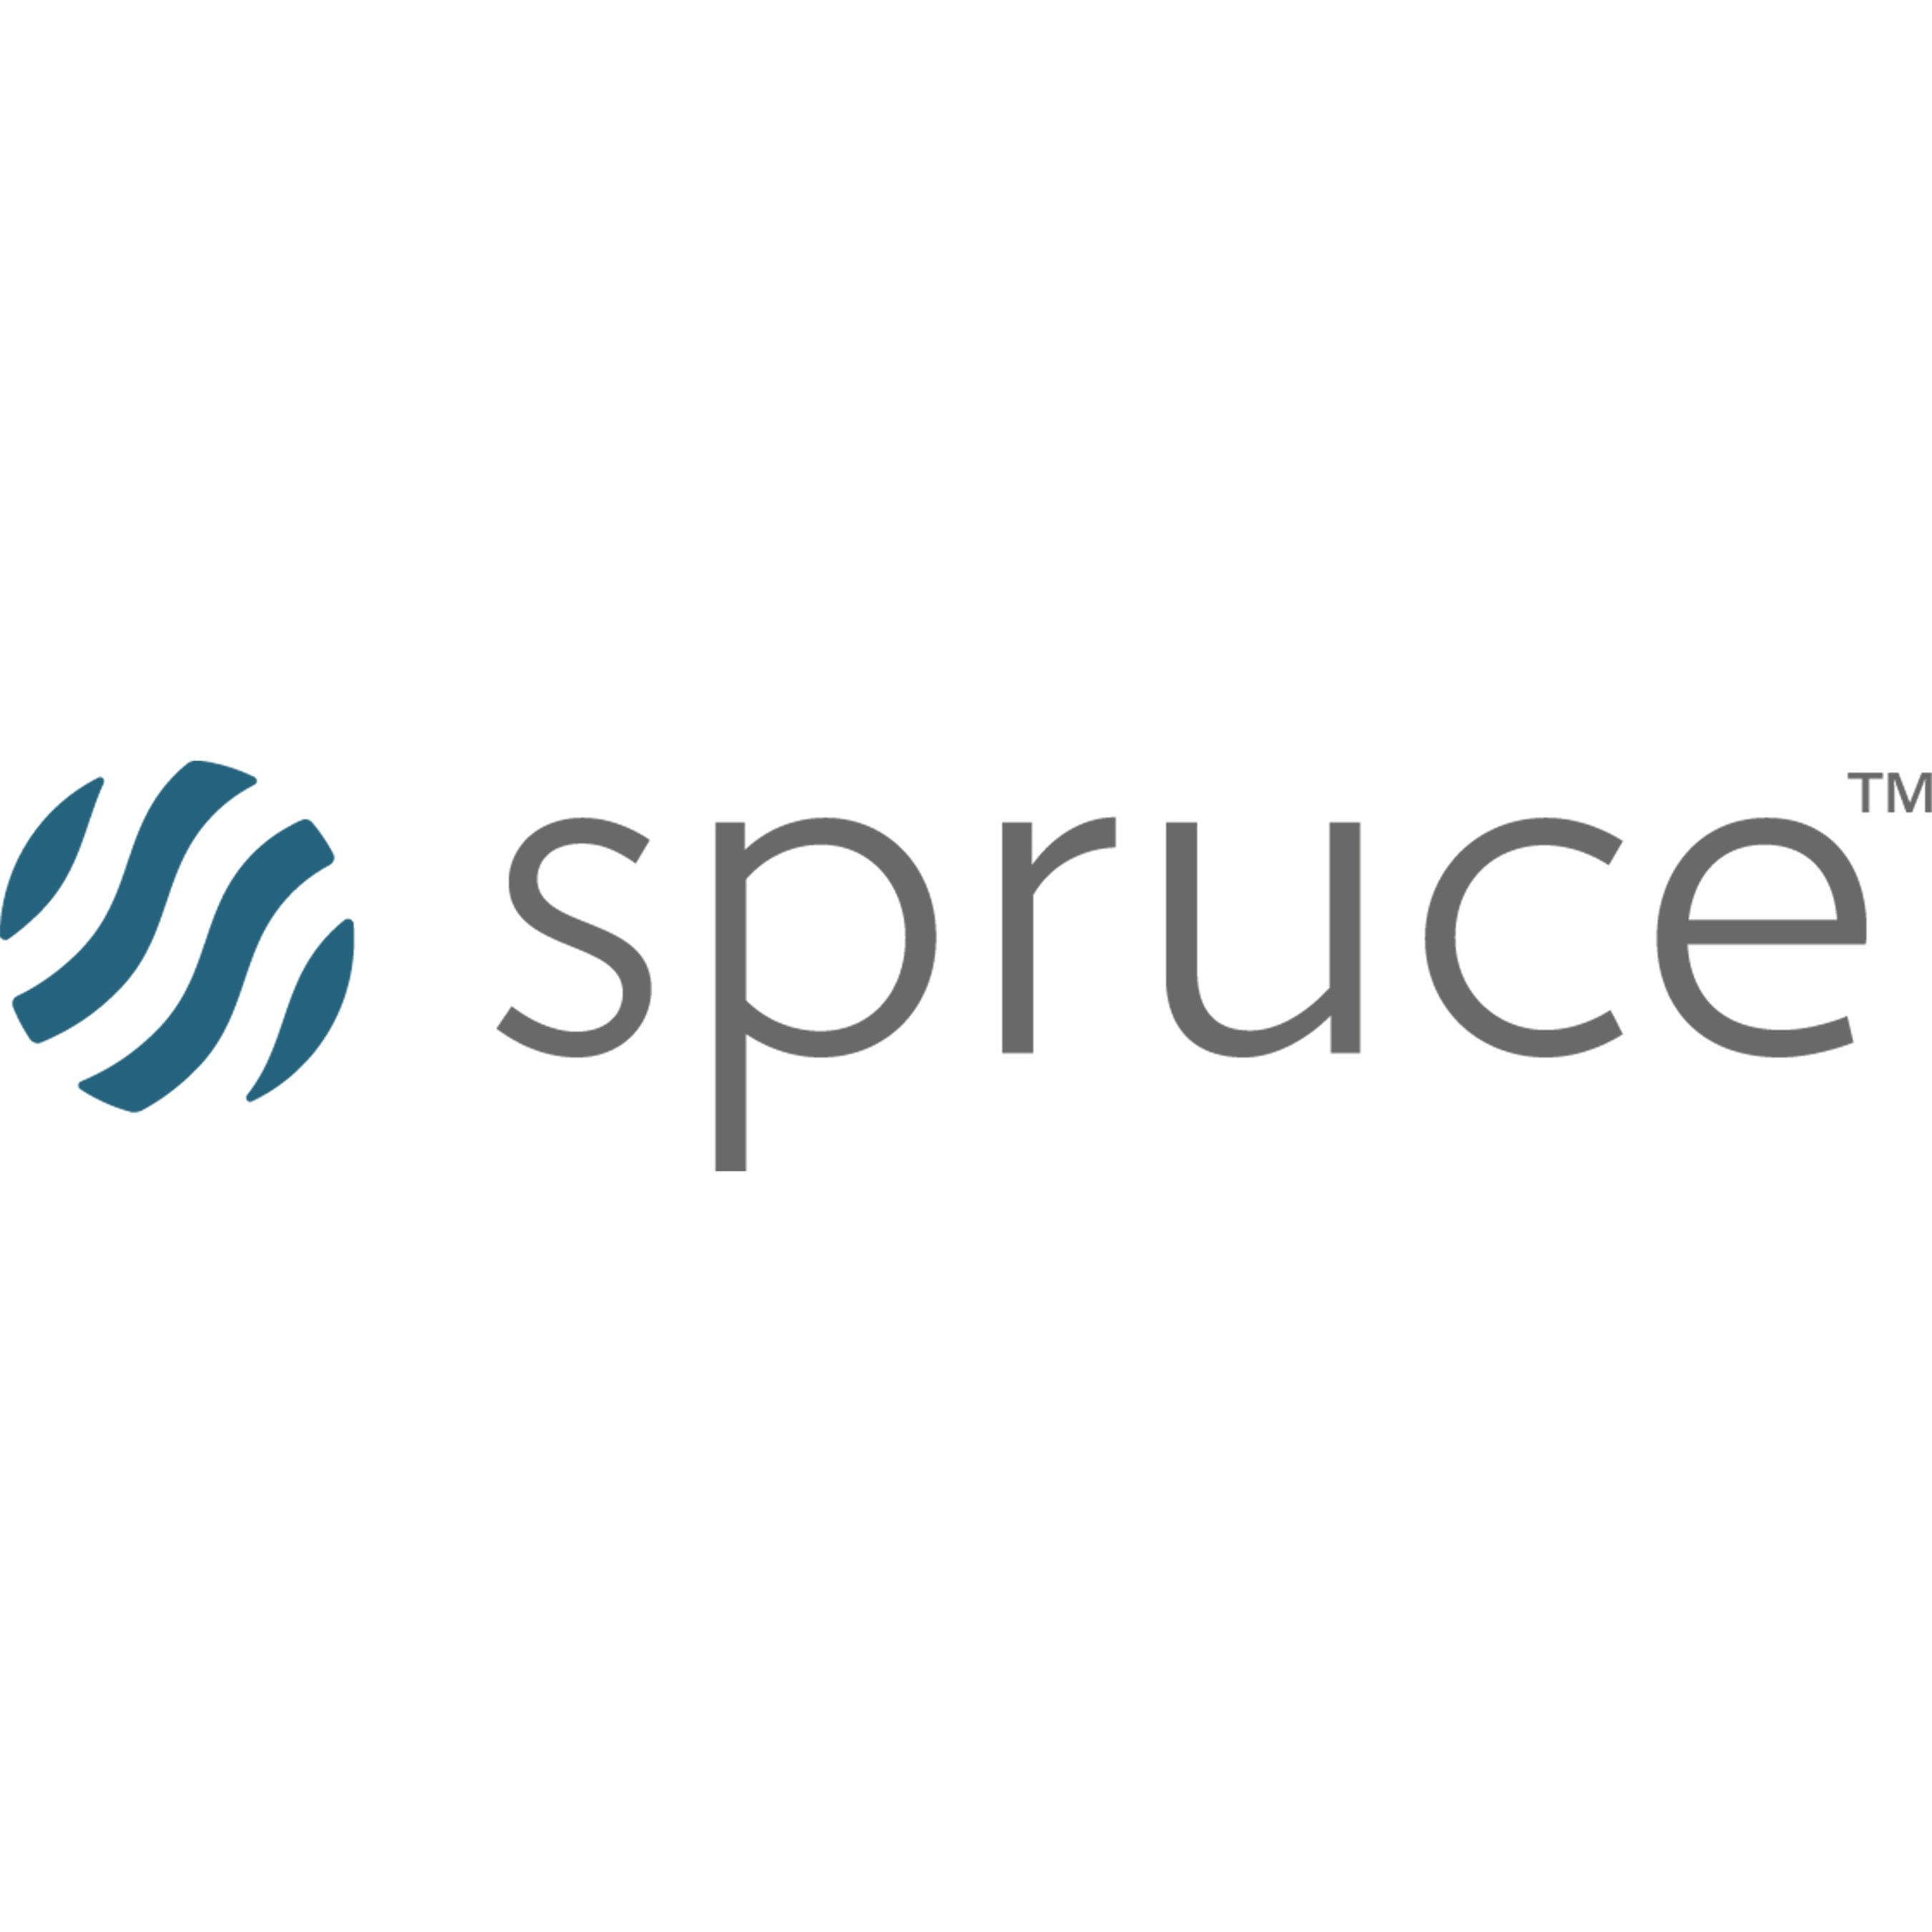 Solar Asset Owner Spruce Finance Lands $50 Million Follow-On Equity Investment from HPS Investment Partners